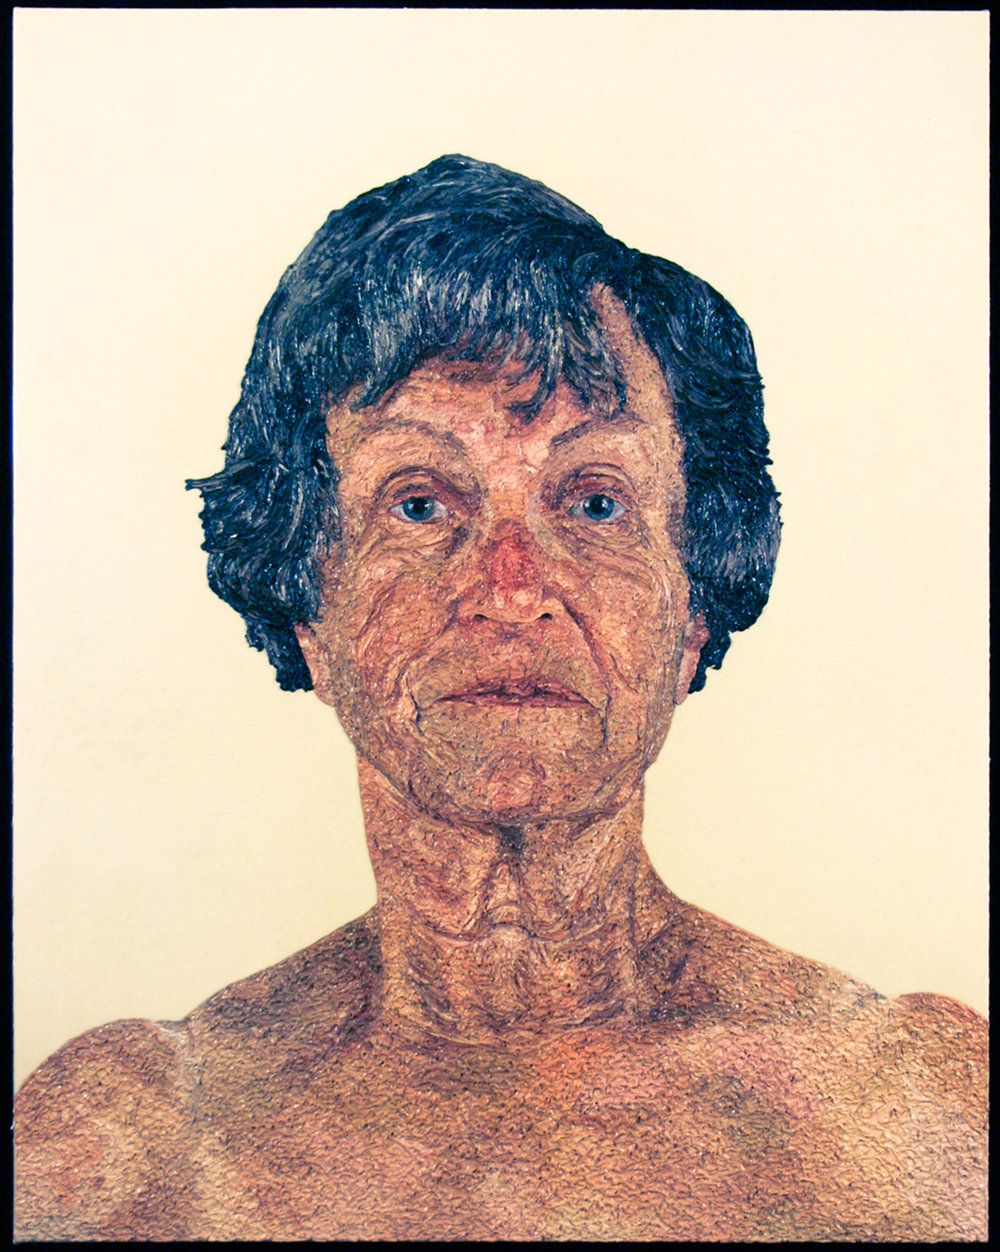 Grandma, 2008  |  48 x 40 inches  | oil and urethane on canvas